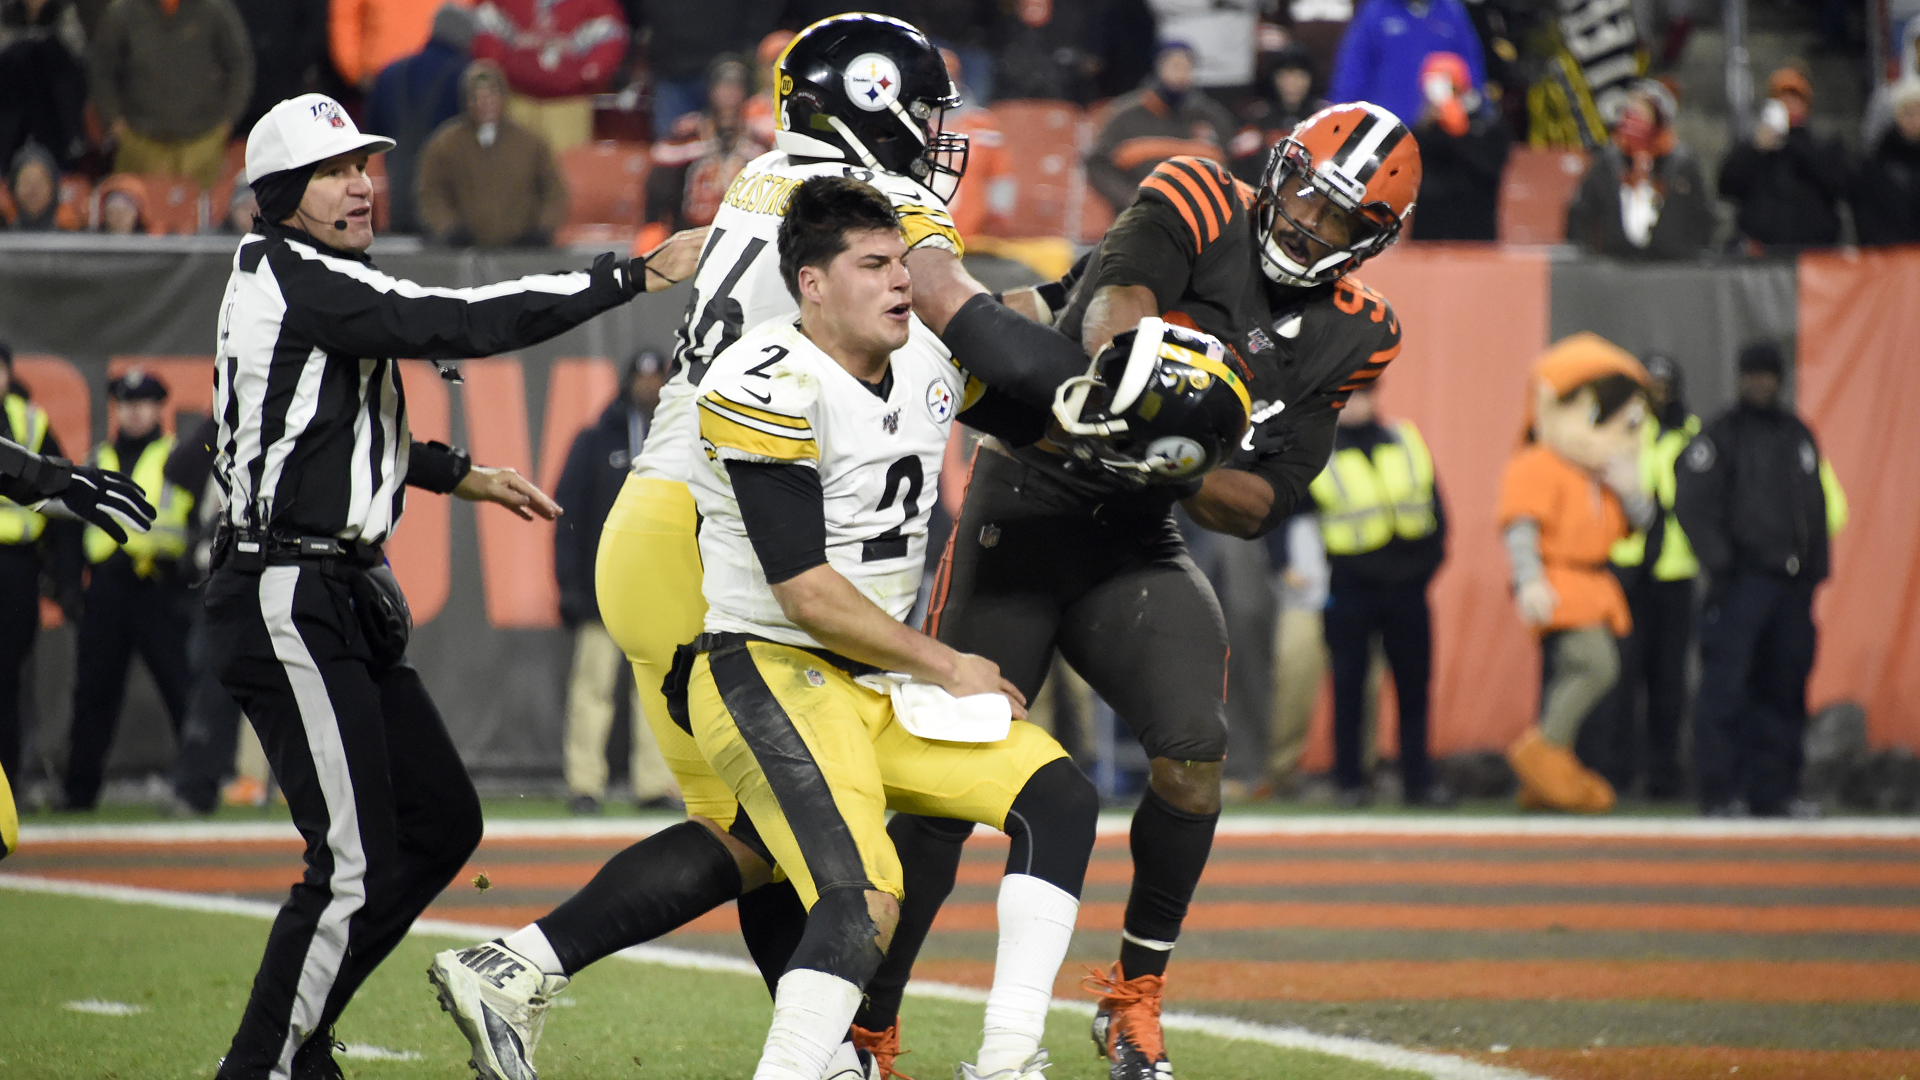 Quarterback Mason Rudolph of the Pittsburgh Steelers fights with defensive end Myles Garrett of the Cleveland Browns during the second half at FirstEnergy Stadium on Nov. 14, 2019 in Cleveland, Ohio. (Credit: Jason Miller/Getty Images)